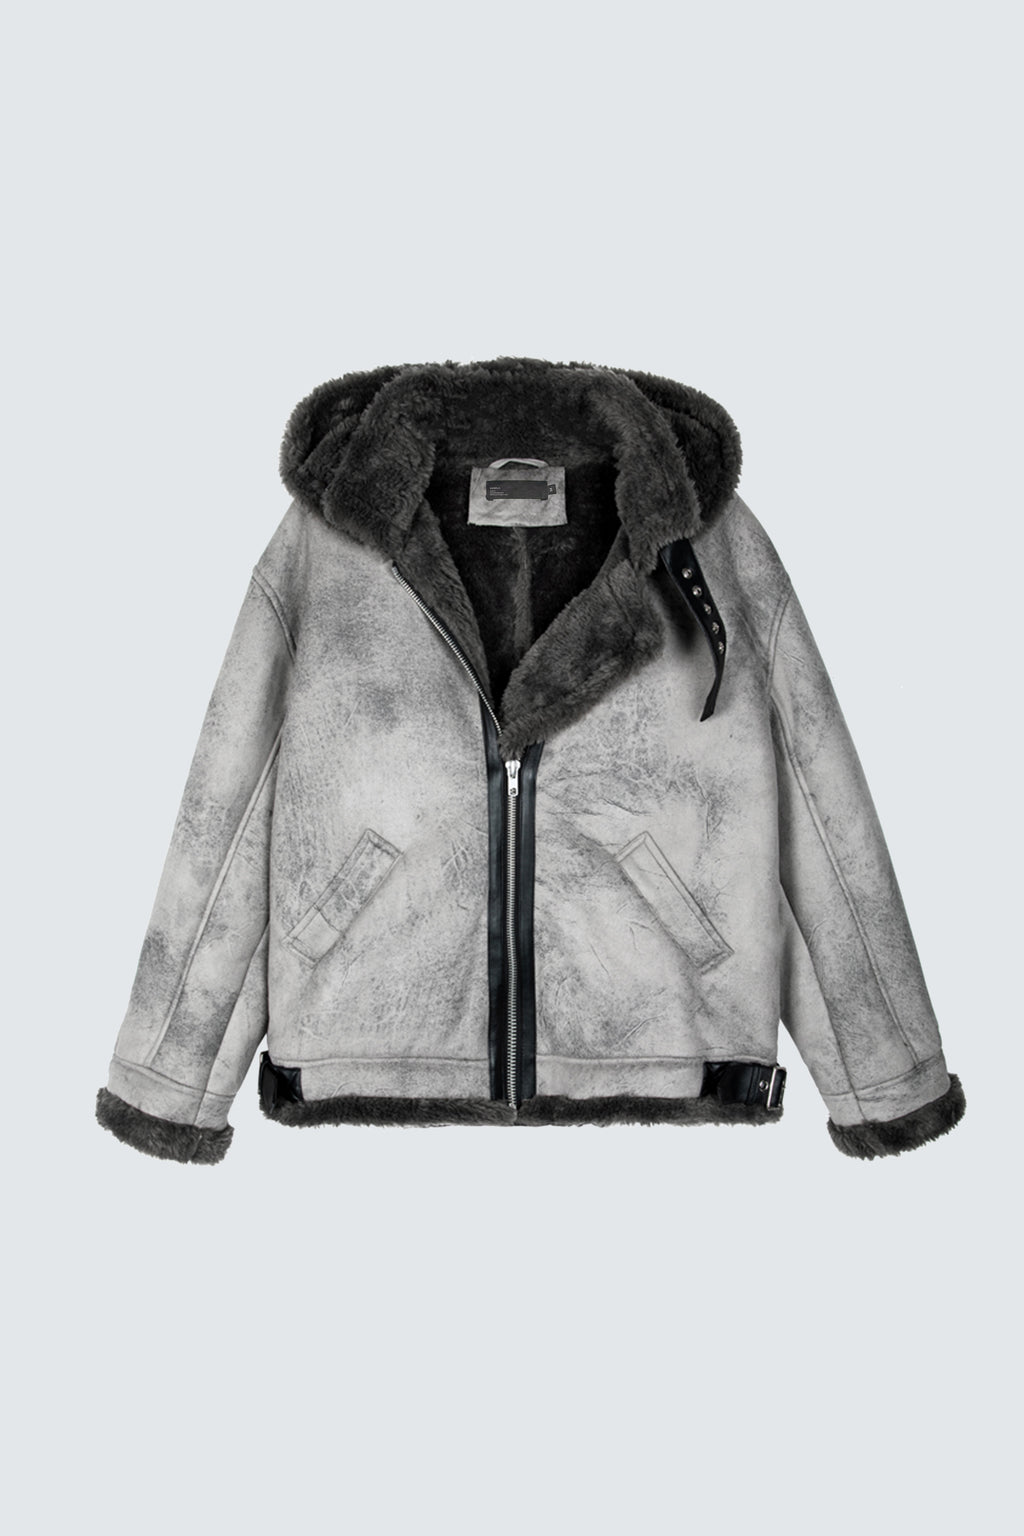 Shearling Jacket - Marble Wash - SVPPLY. STUDIOS